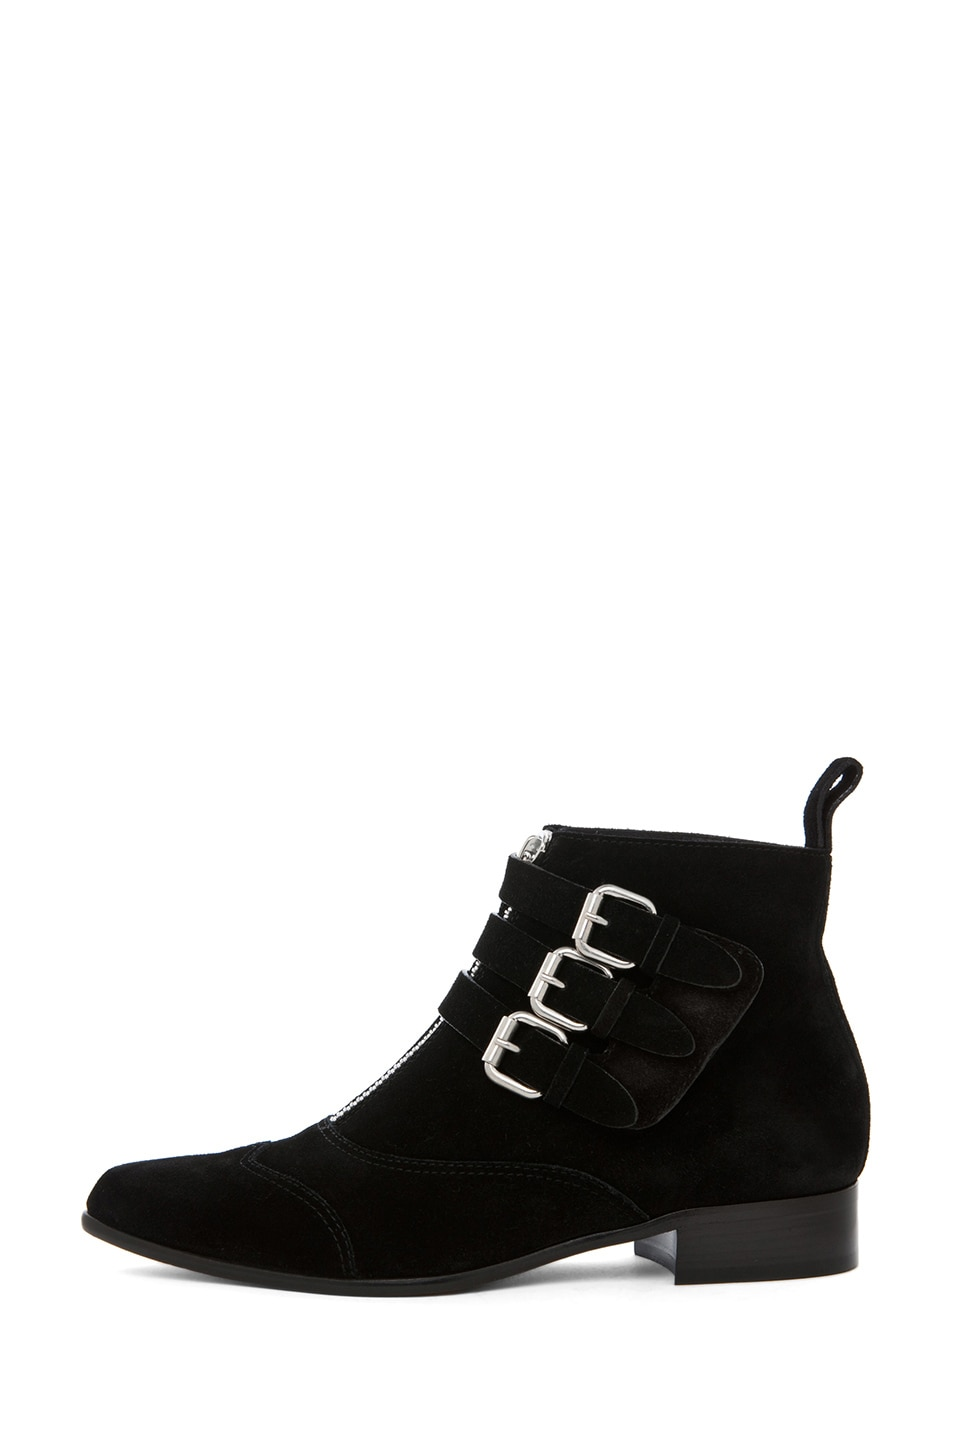 Image 1 of Tabitha Simmons Early Suede Bootie in Black